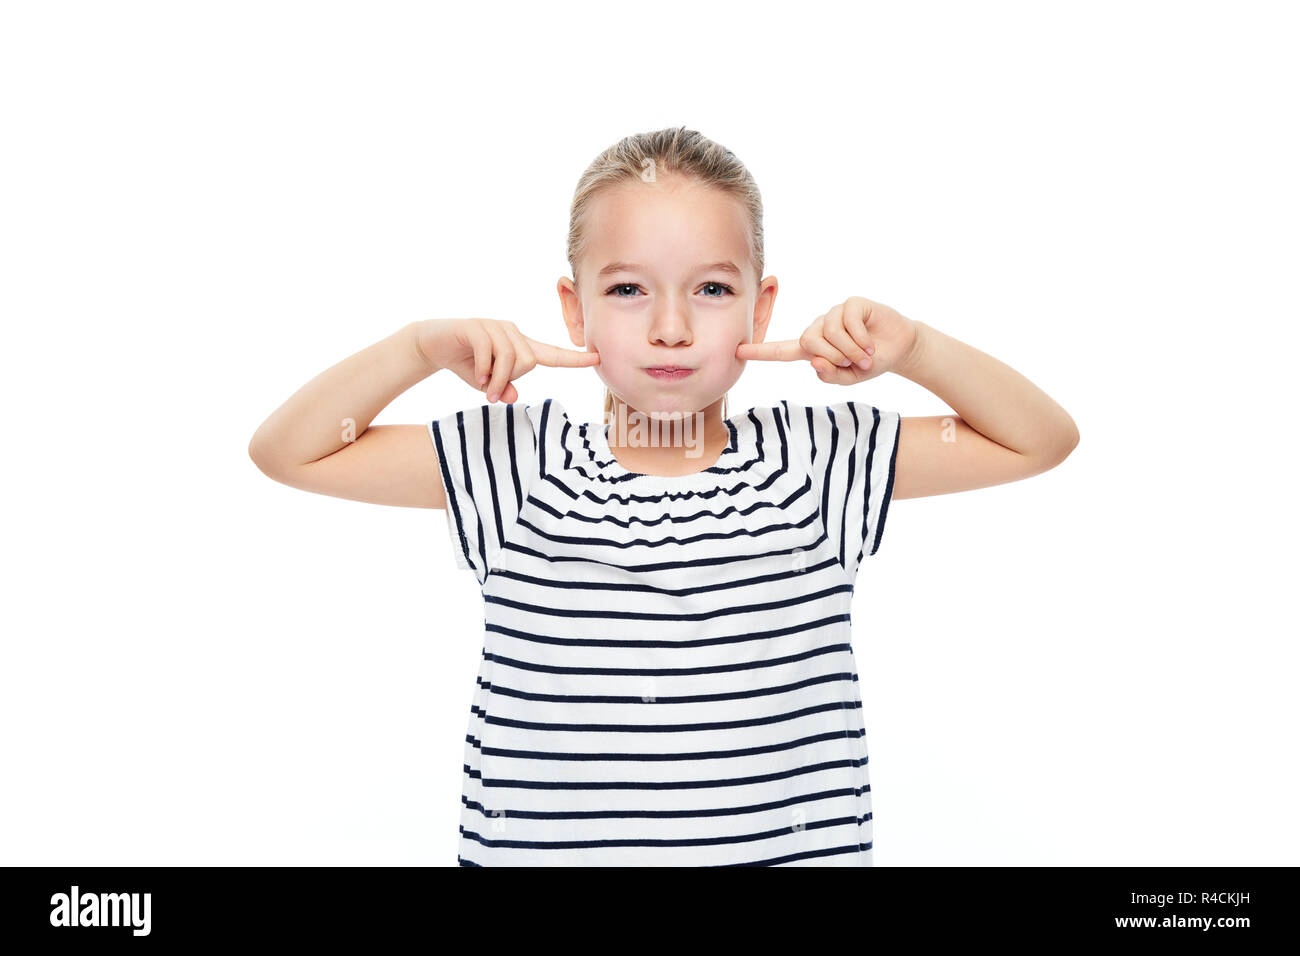 Cute young girl making special exercises at speech therapy office. Child speech therapy concept on white background. Speech impediment corrective exer - Stock Image